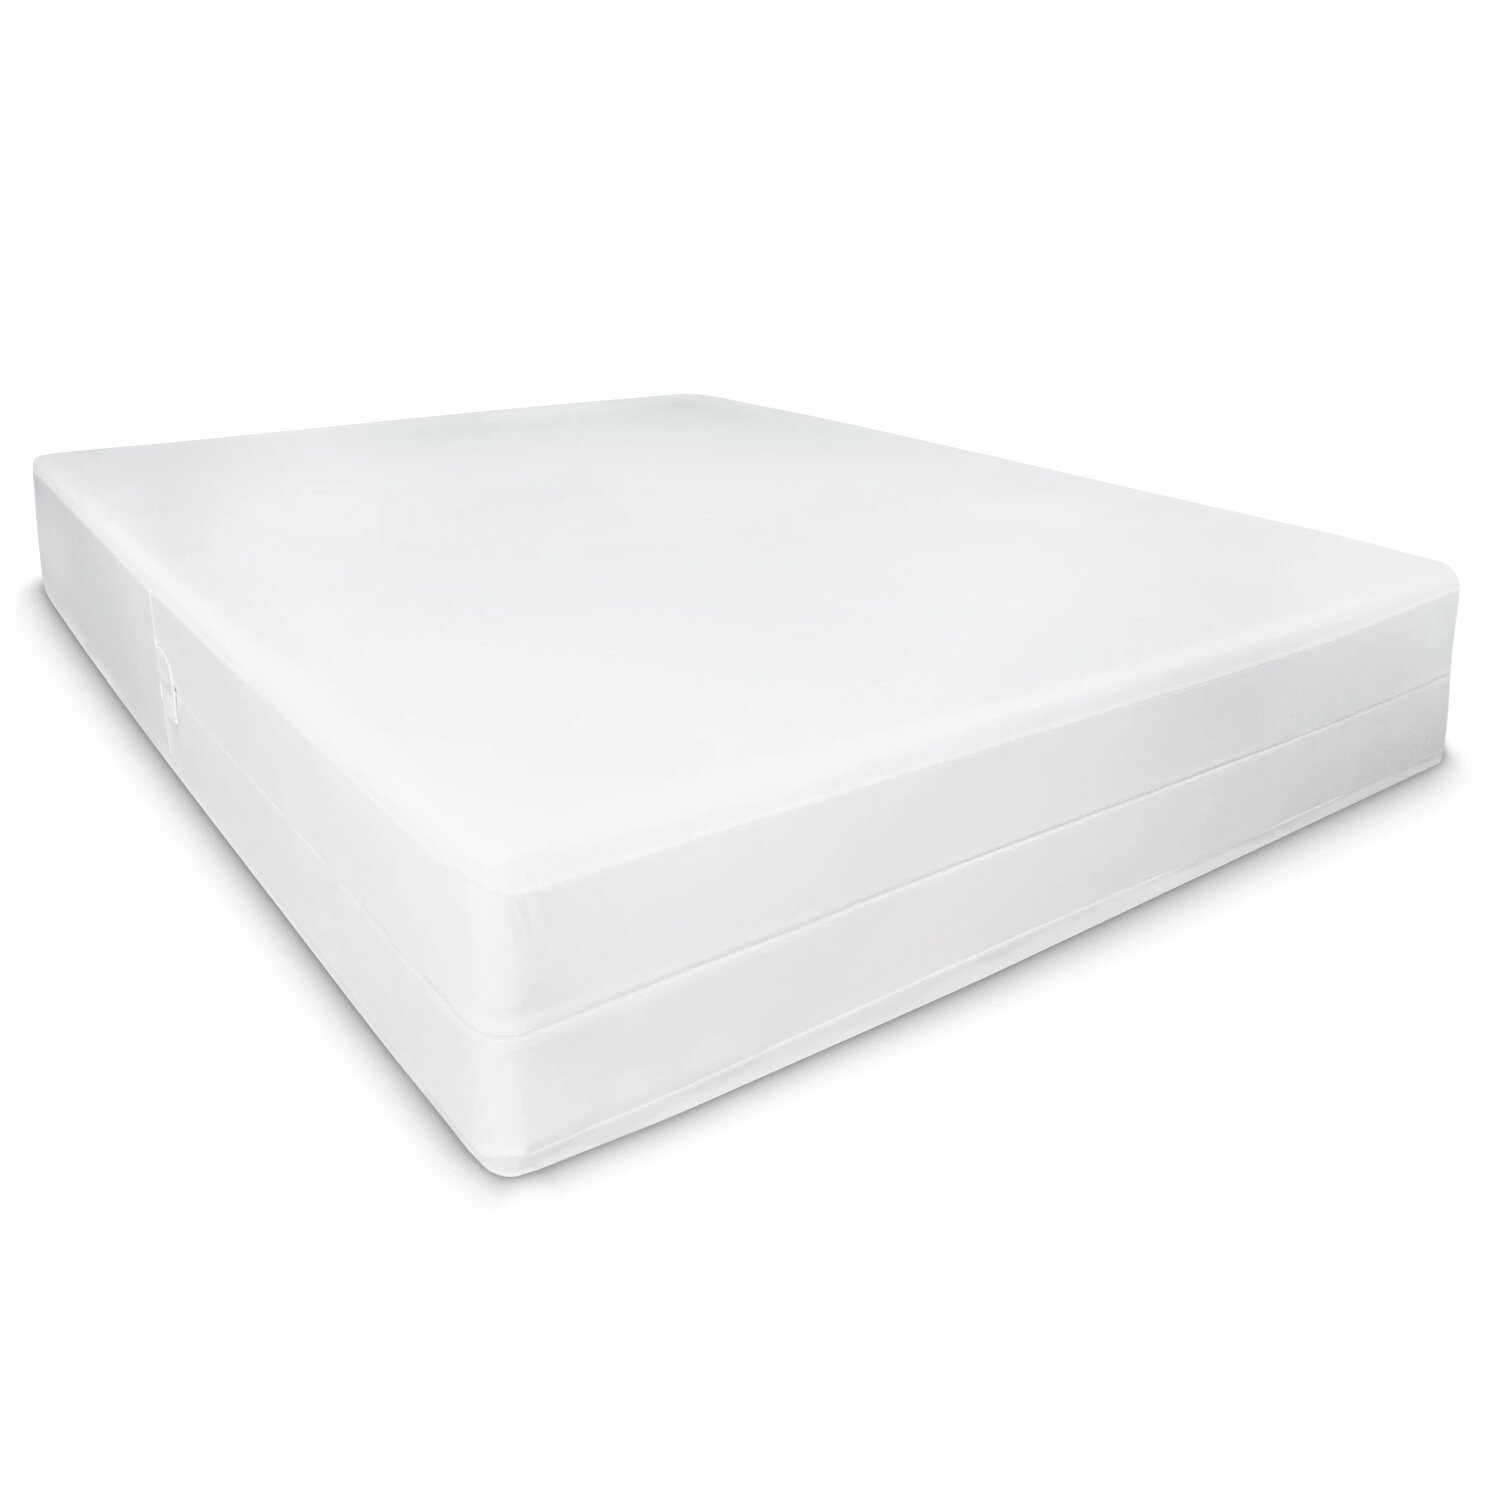 Arsuite Premium Hypoallergenic And Waterproof Zippered Mattress Protector Wayfair